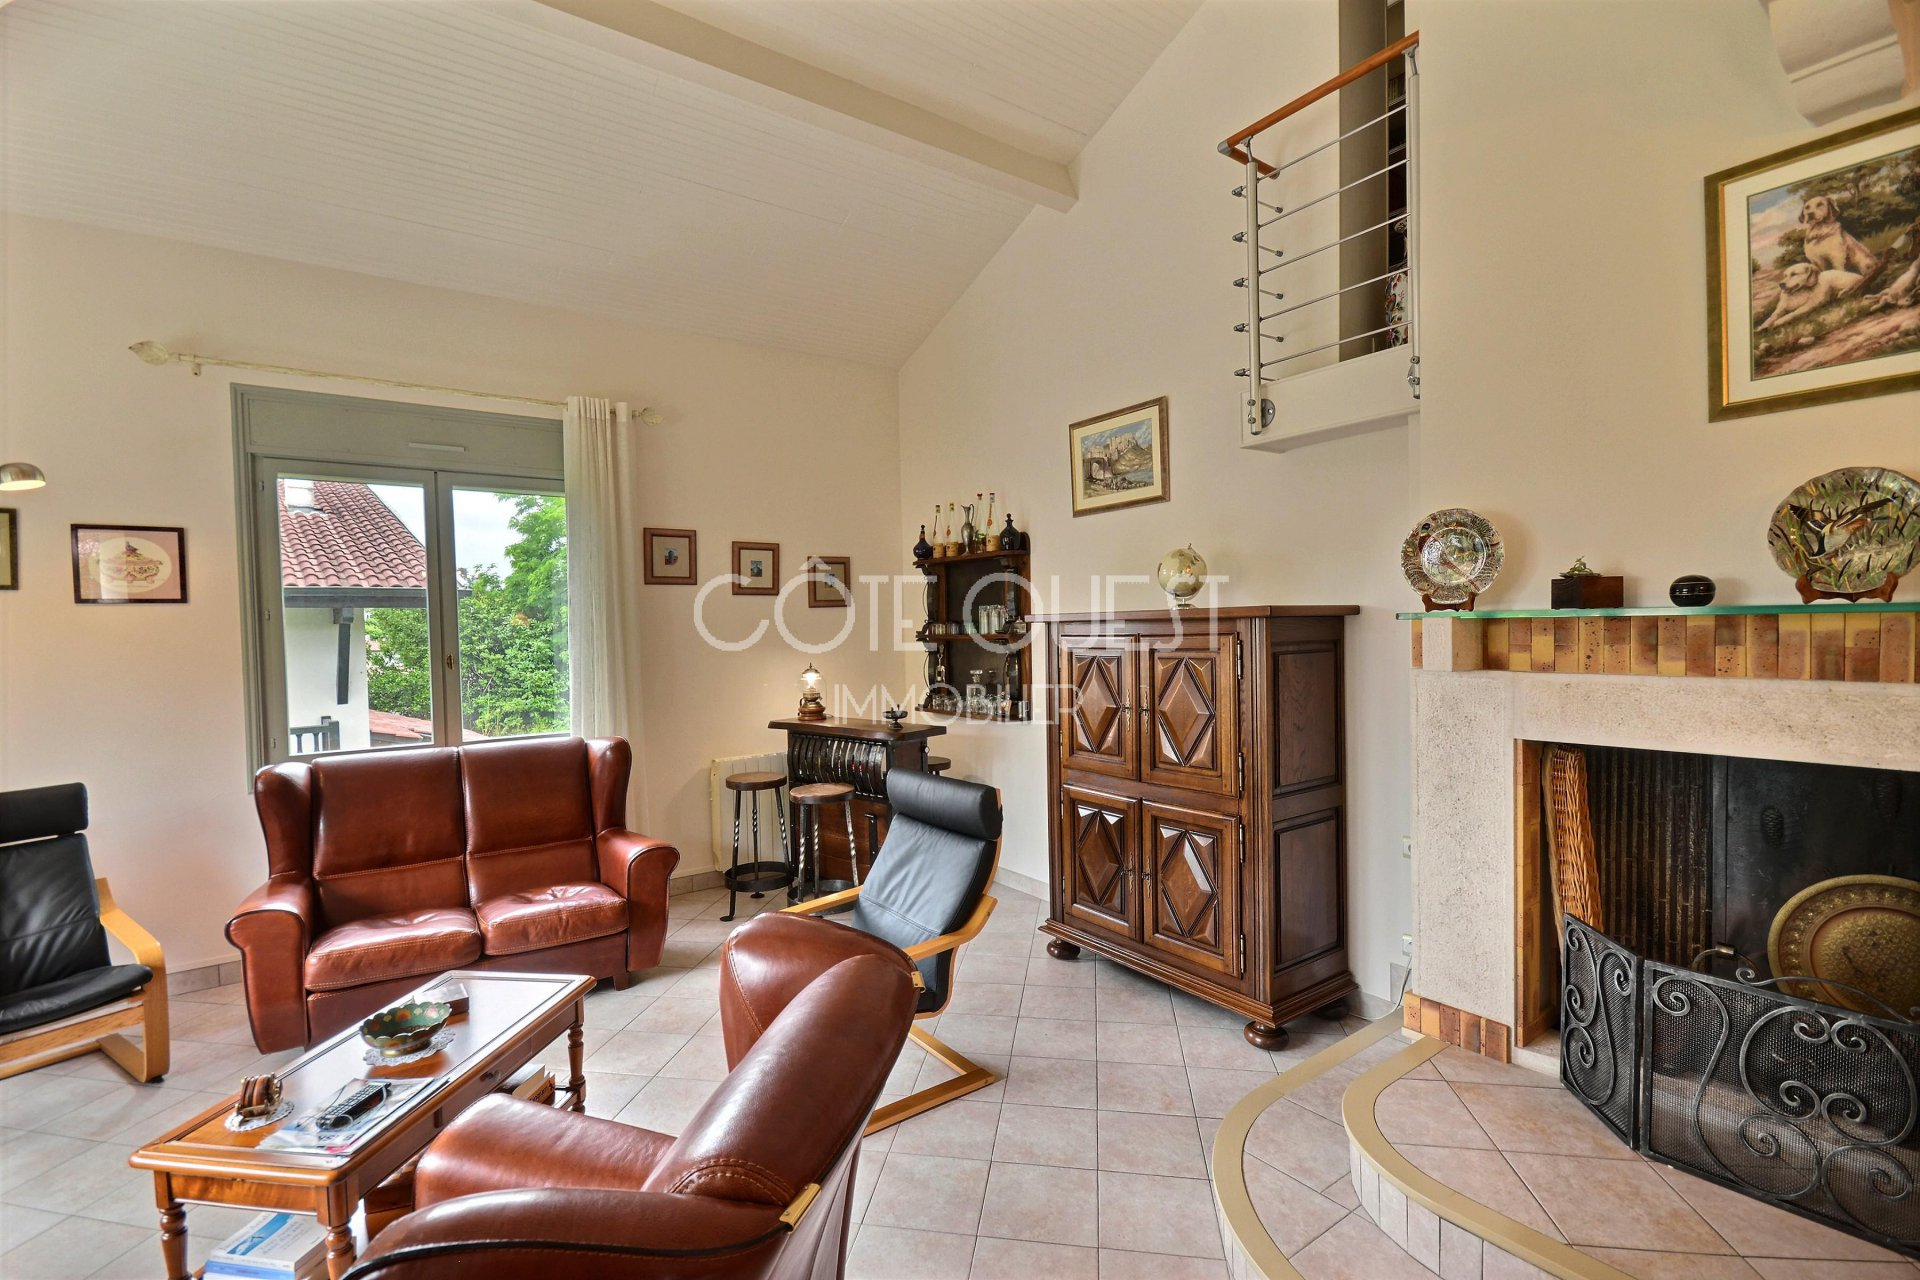 SAINT-JEAN-DE-LUZ. A NEAR 190 SQM VILLA WITH A GARDEN